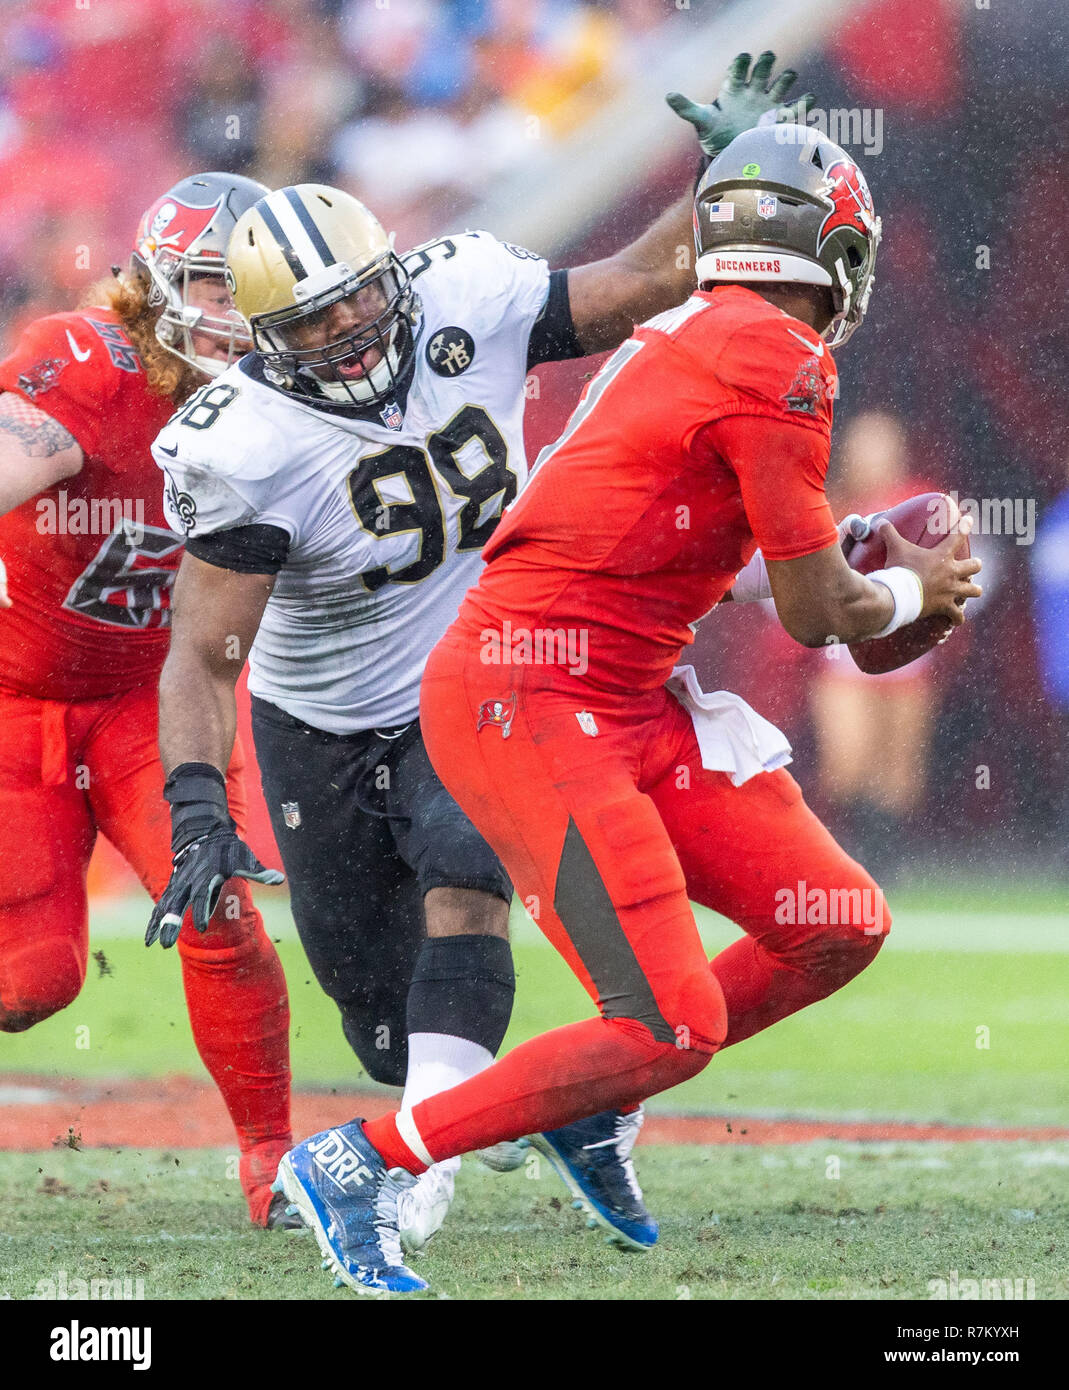 Tampa, Florida, USA. 09th Dec, 2018. New Orleans Saints defensive tackle Sheldon Rankins (98) chases Tampa Bay Buccaneers quarterback Jameis Winston (3) during the game between the New Orleans Saints and the Tampa Bay Buccaneers at Raymond James Stadium in Tampa, Florida. Saints win 28-14. Del Mecum/CSM/Alamy Live News - Stock Image